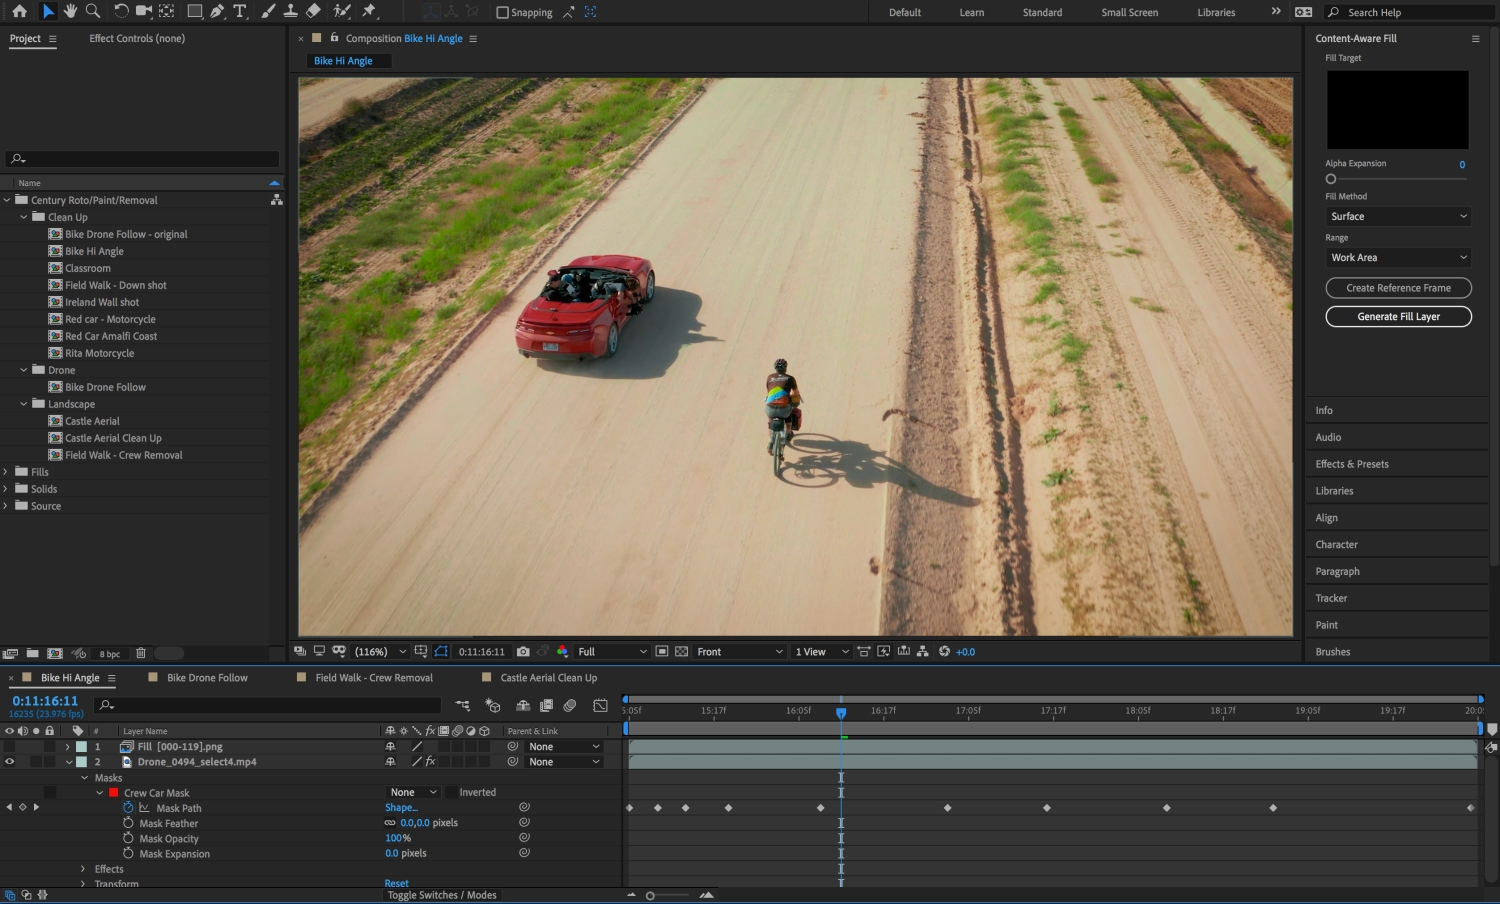 Adobe brings content-aware fill for videos to After Effects | TechCrunch